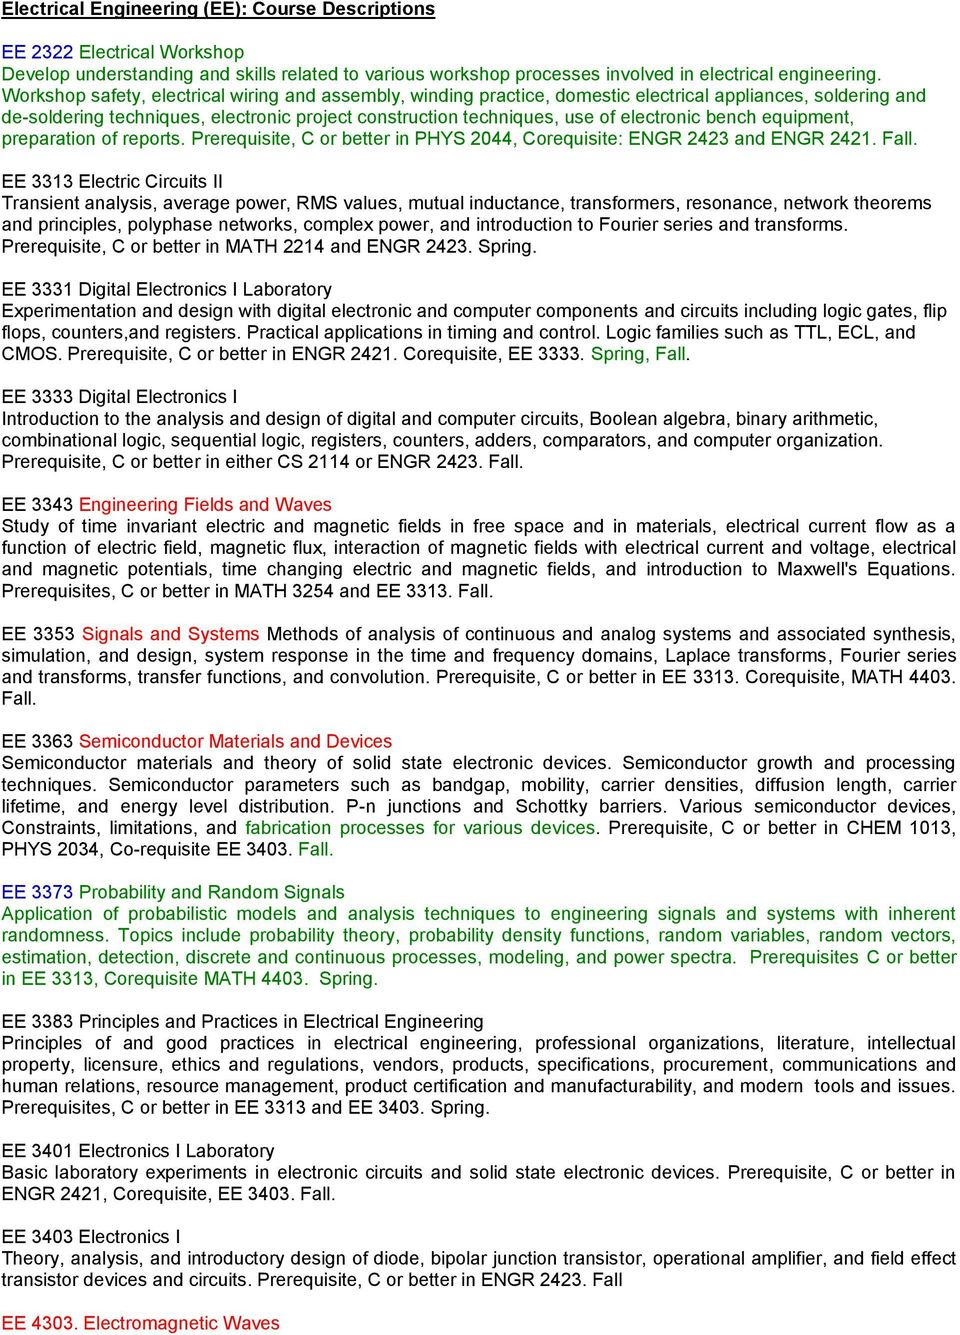 BSEE Degree Plan Bachelor of Science in Electrical